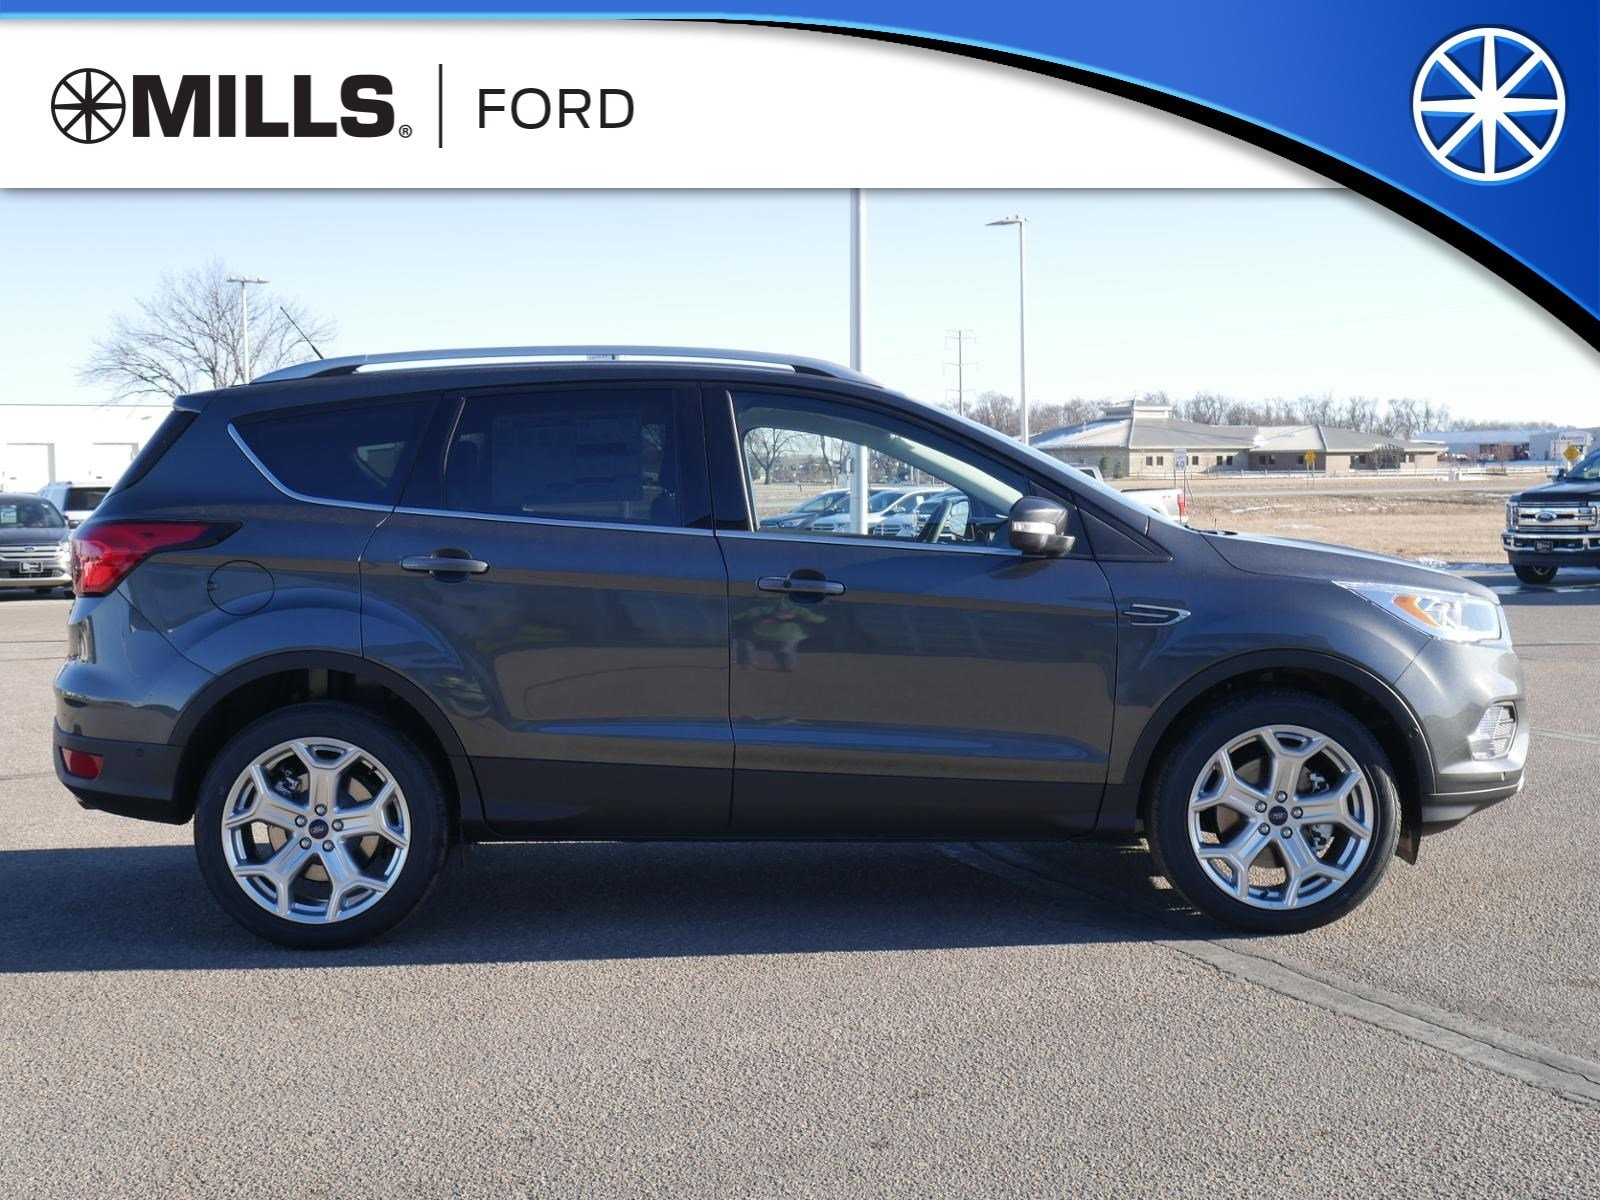 Mills Ford Willmar >> New Fords You Ll Love For Sale Mills Ford New Ford Dealer In